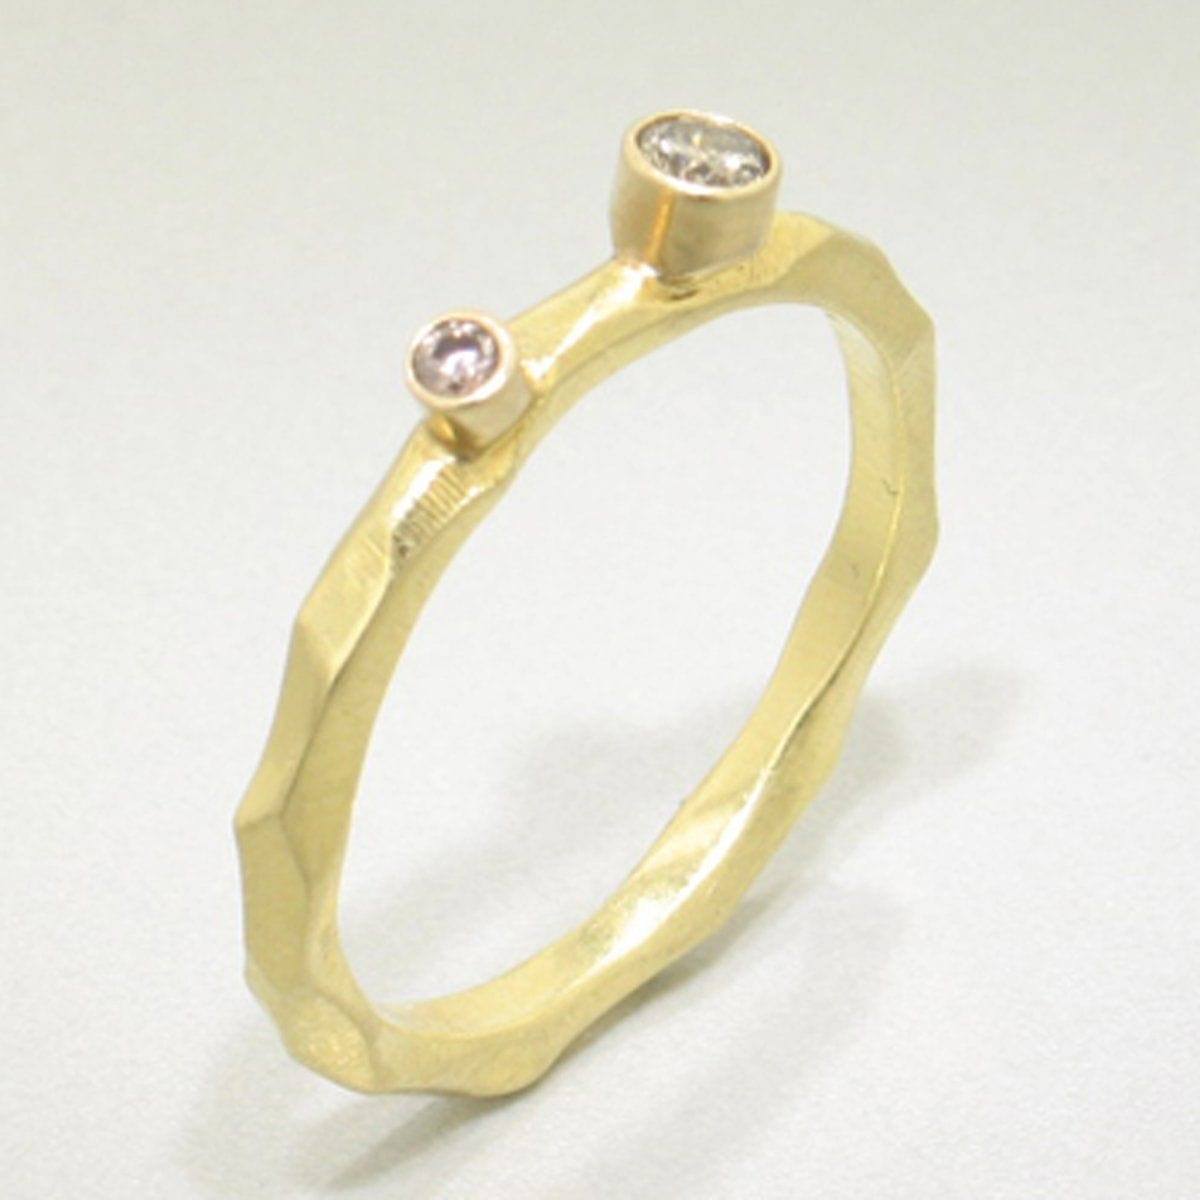 Rogue River Stacking Diamond & Gold Ring - 43R11G722742-YG-Sarah Graham-Renee Taylor Gallery